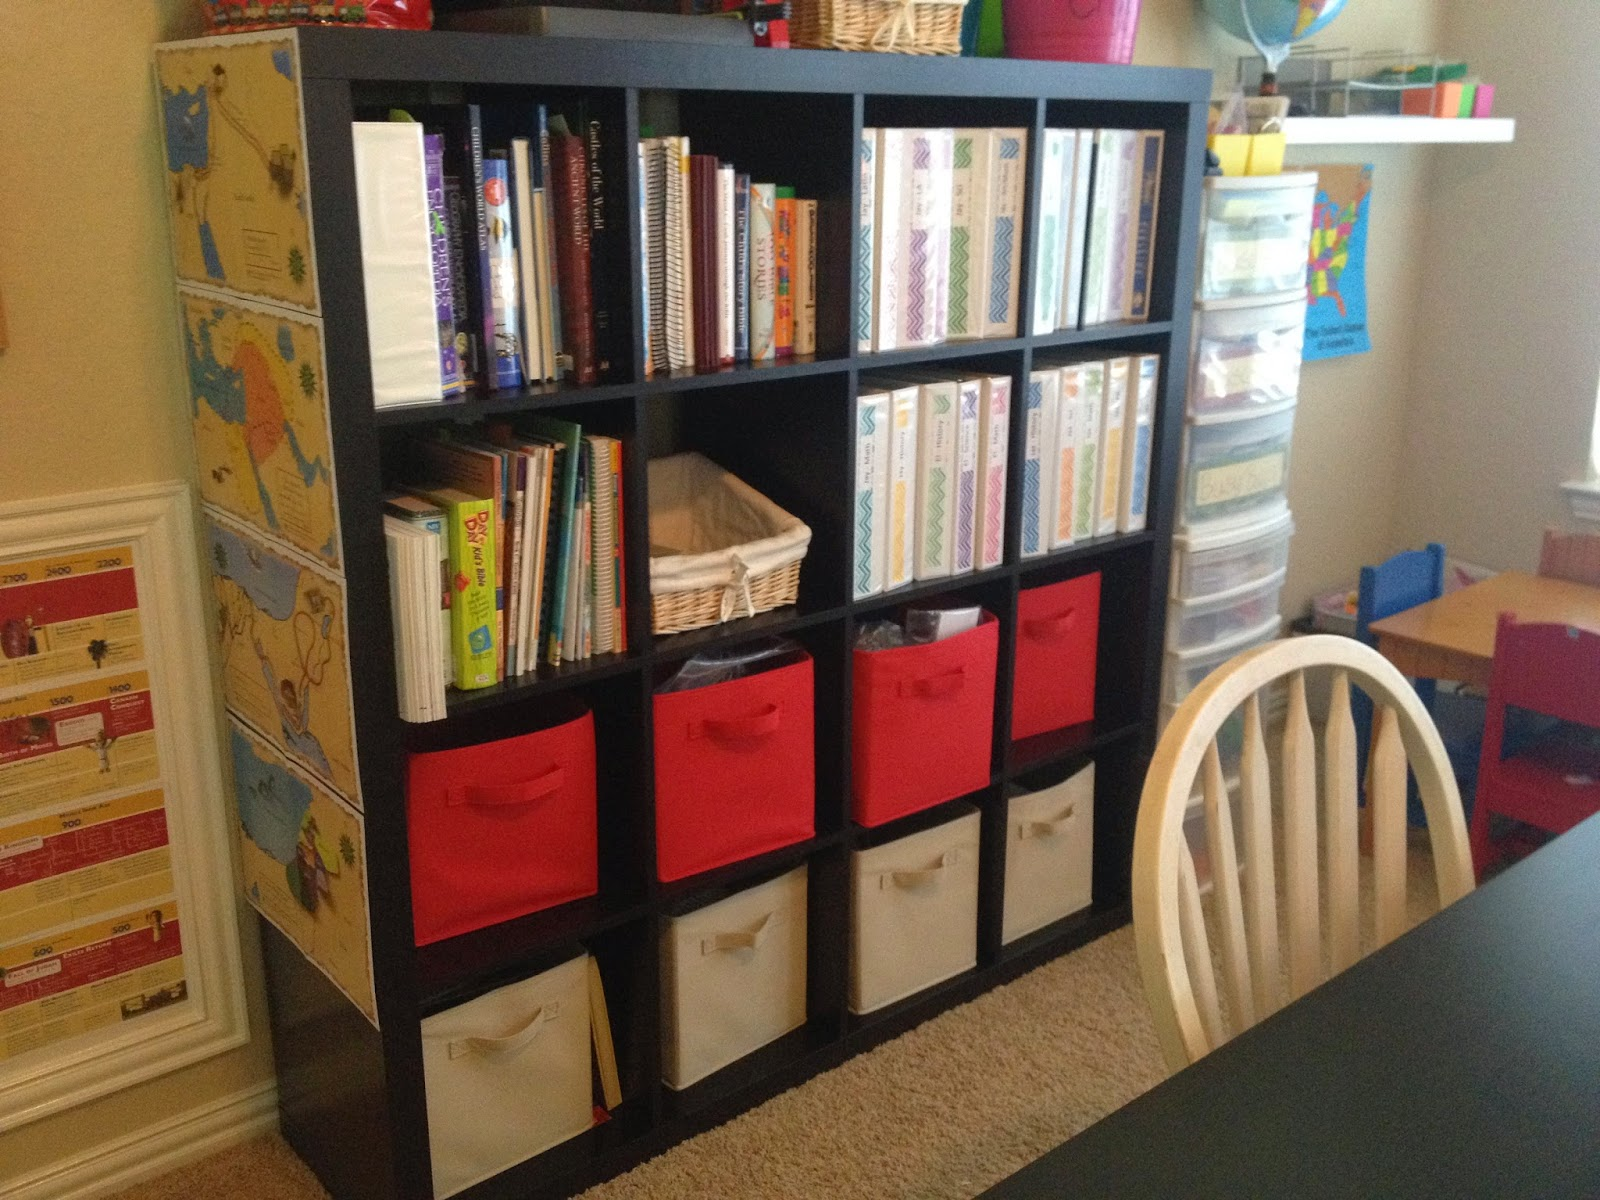 A tour of our homeschool room lextin eclectic here is our other bookshelf this black shelf holds teacher manuals for me and notebooks for each of the kids i spent some time with the printer and gumiabroncs Choice Image